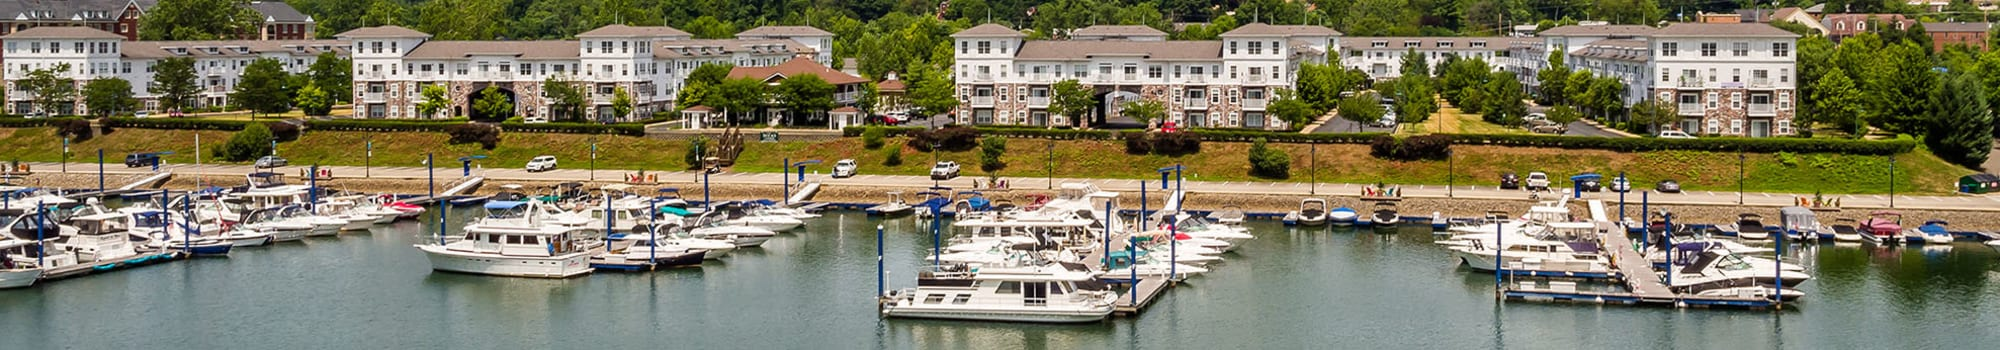 Schedule a tour at The Docks in Pittsburgh, Pennsylvania